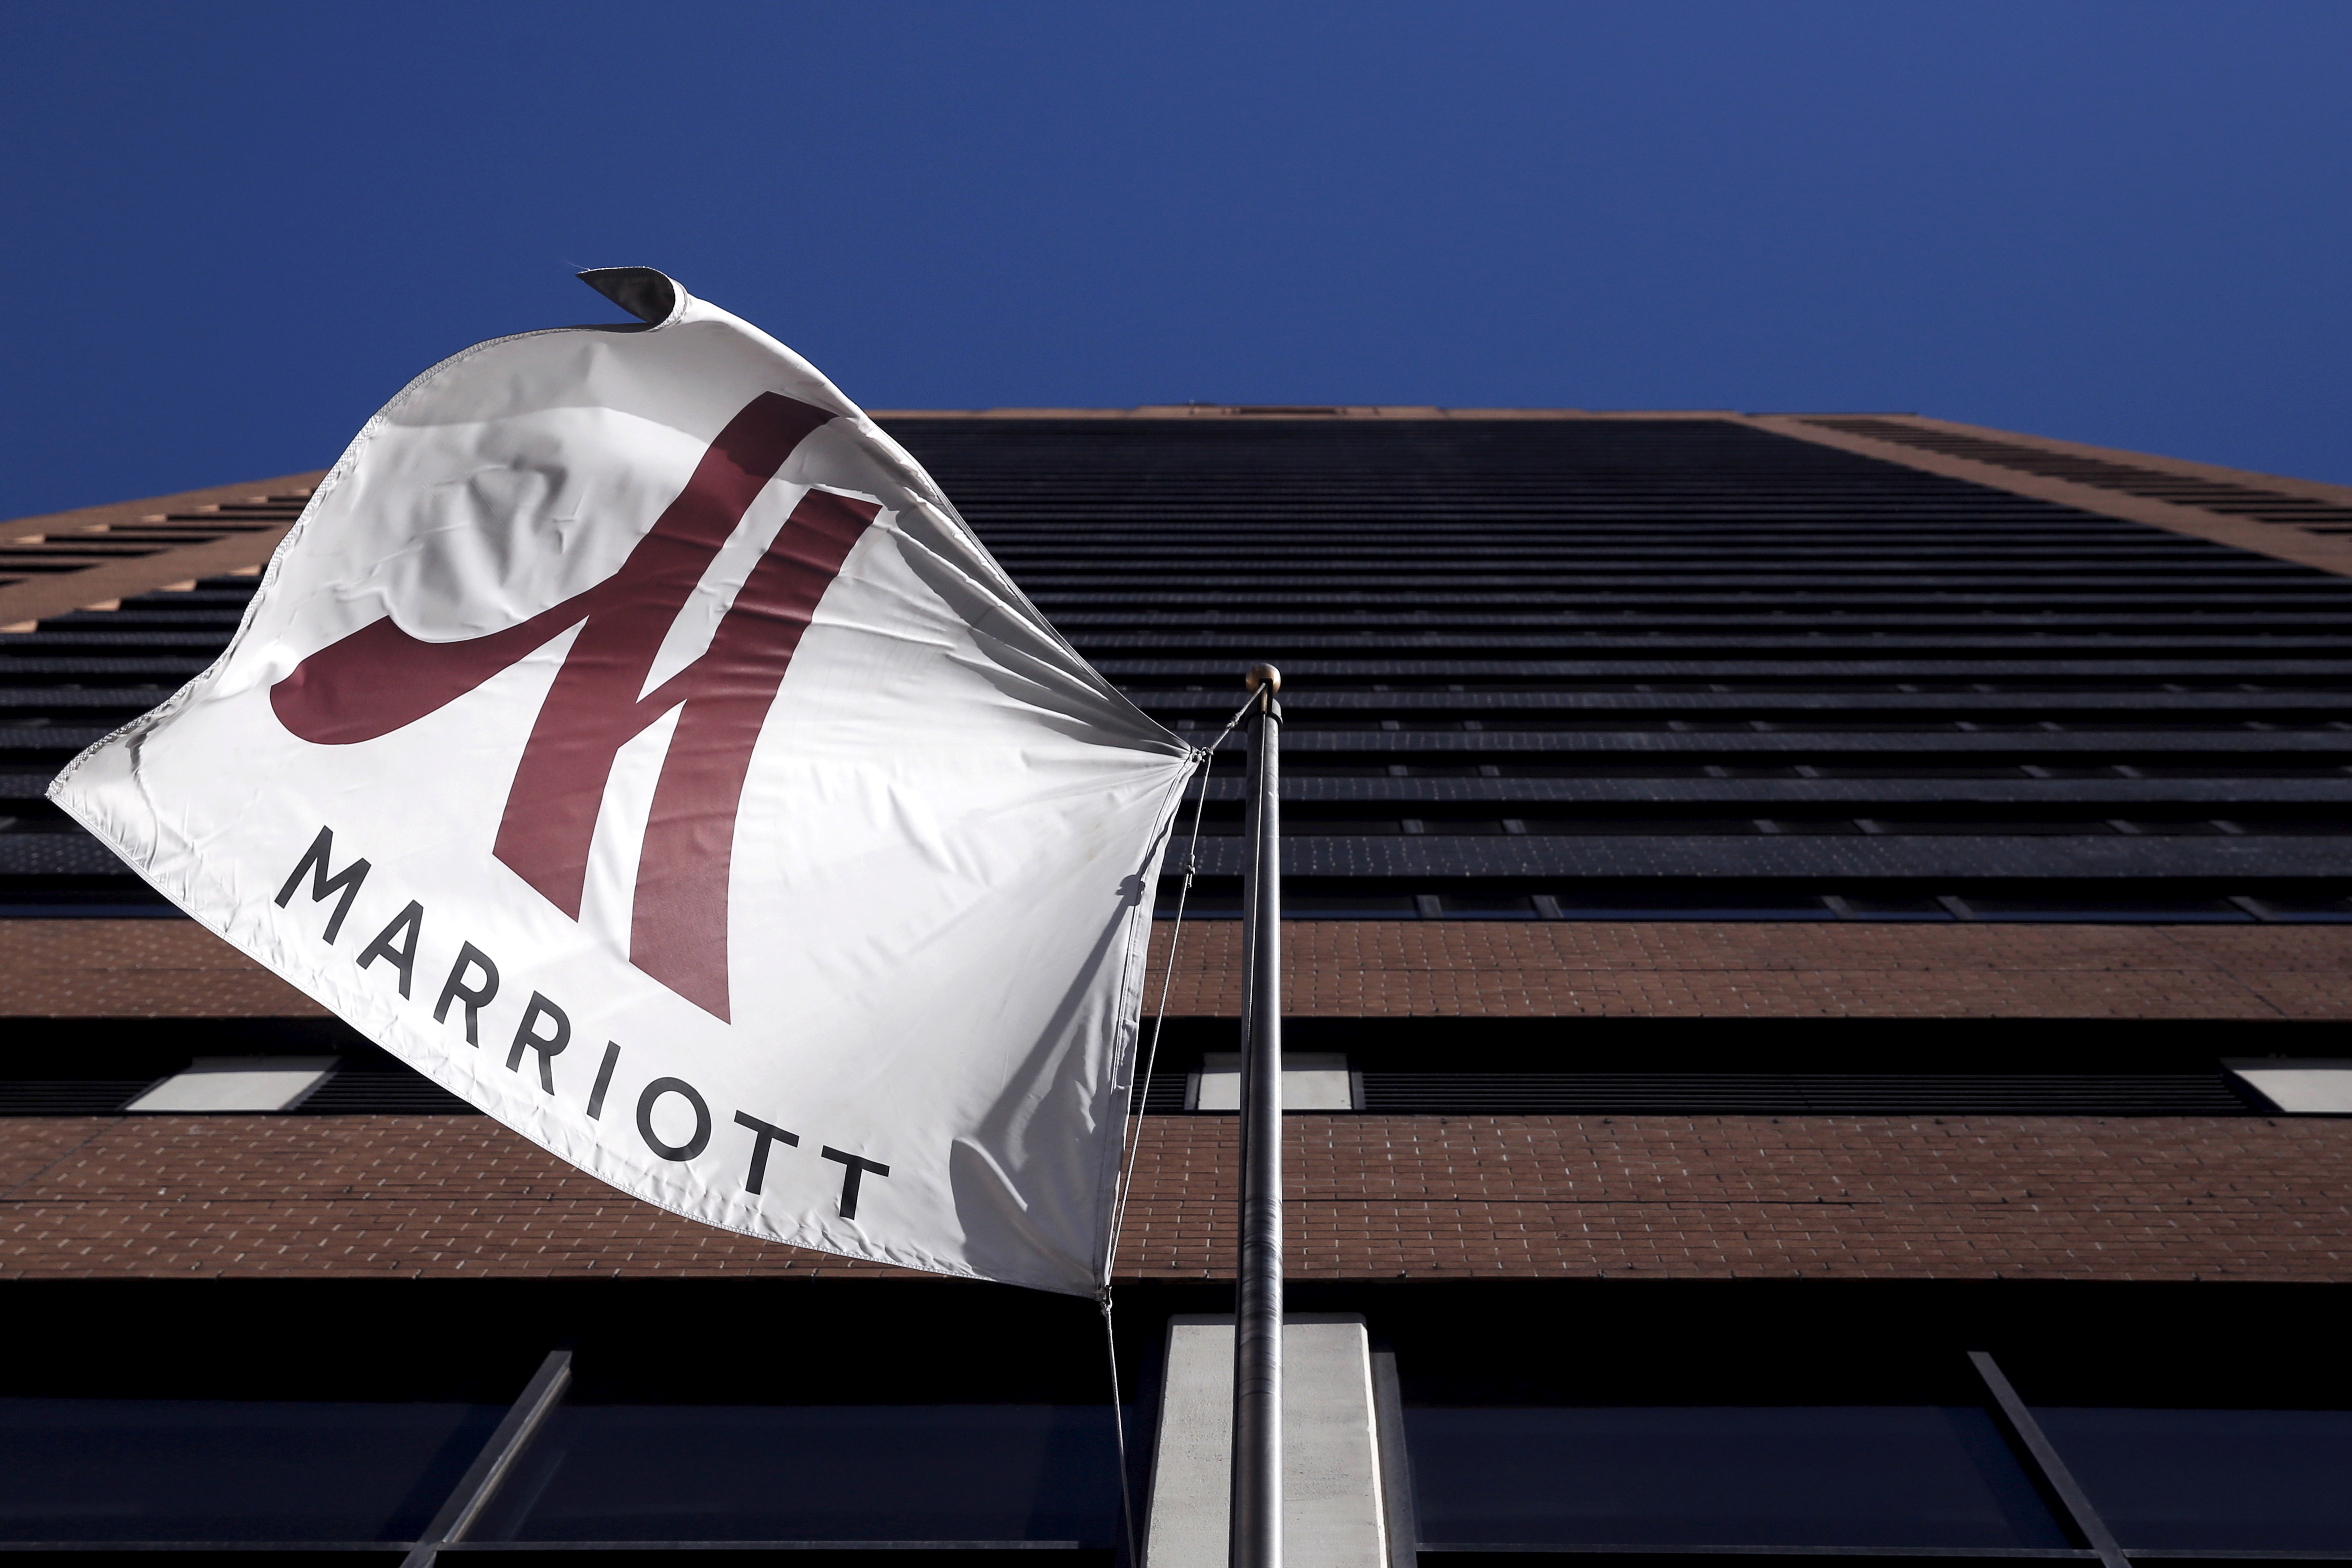 A Marriott flag hangs at the entrance of the New York Marriott Downtown hotel in Manhattan, New York November 16, 2015. REUTERS/Andrew Kelly/File Photo